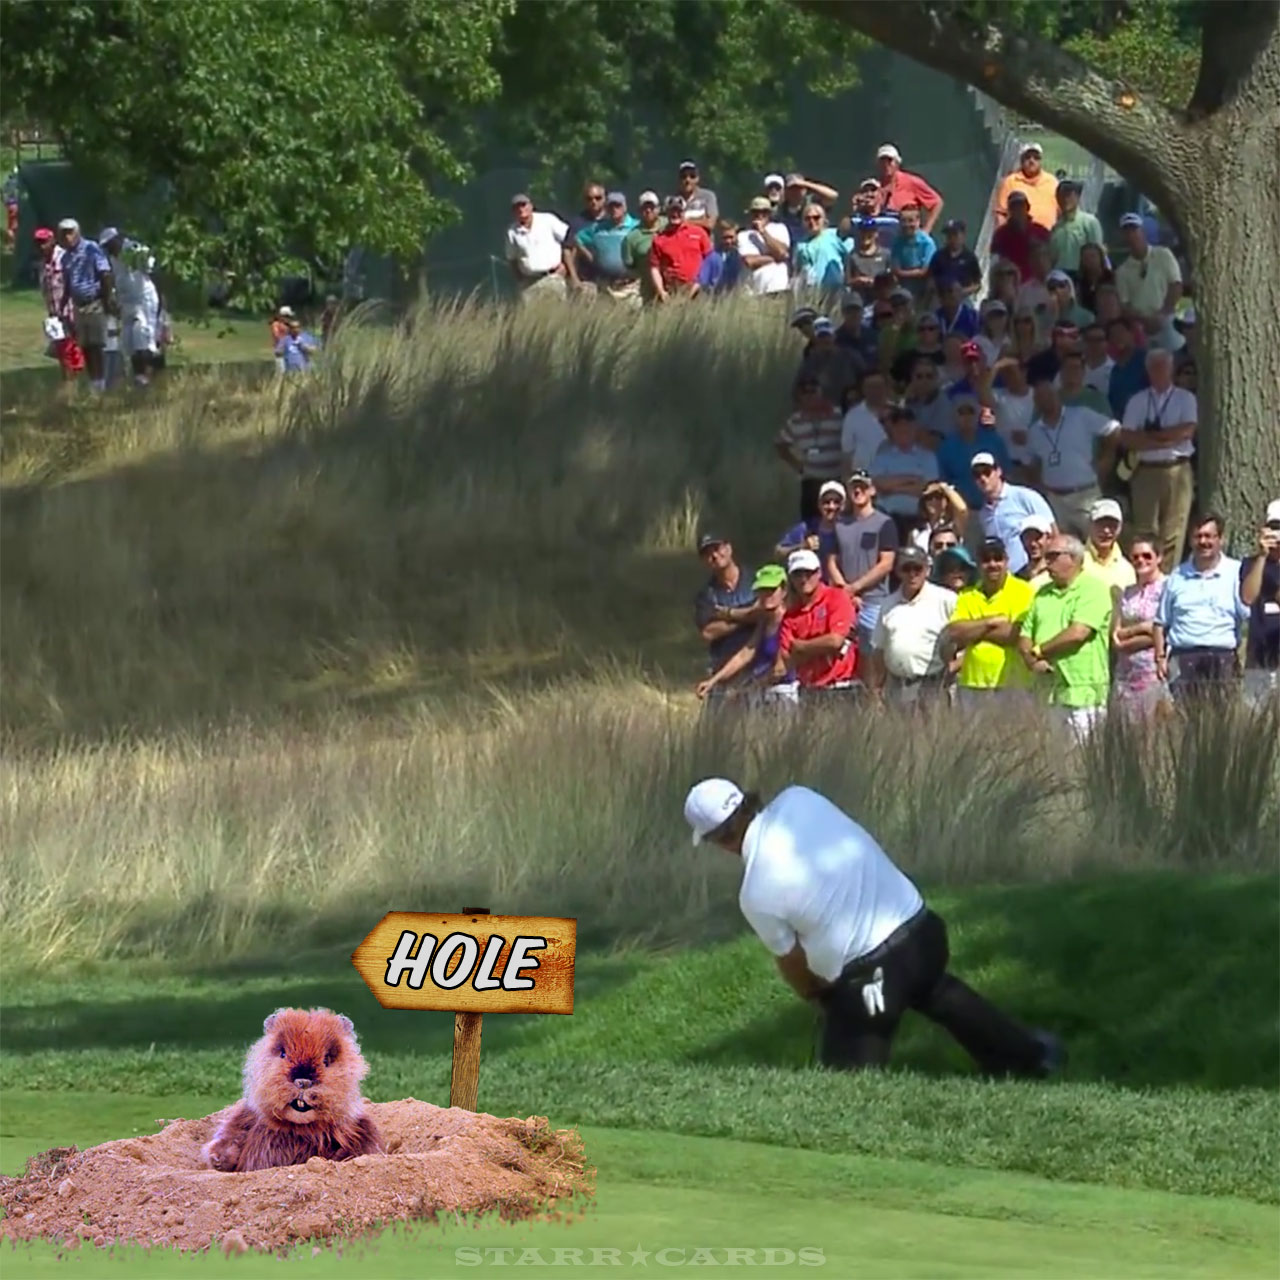 Phil Mickelson tries backward shot on the 18th hole at The Barclays